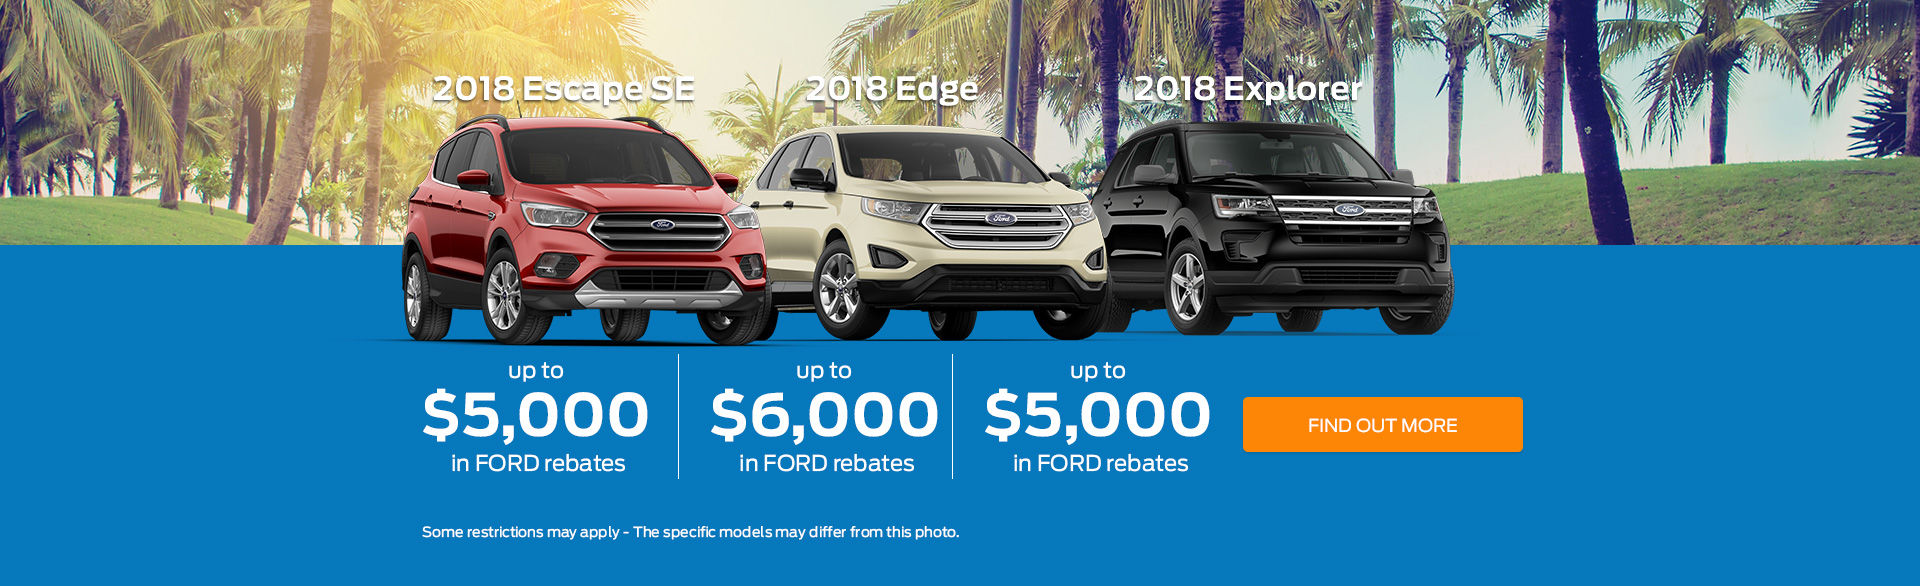 Up to $6,000 in Ford Rebates in June!